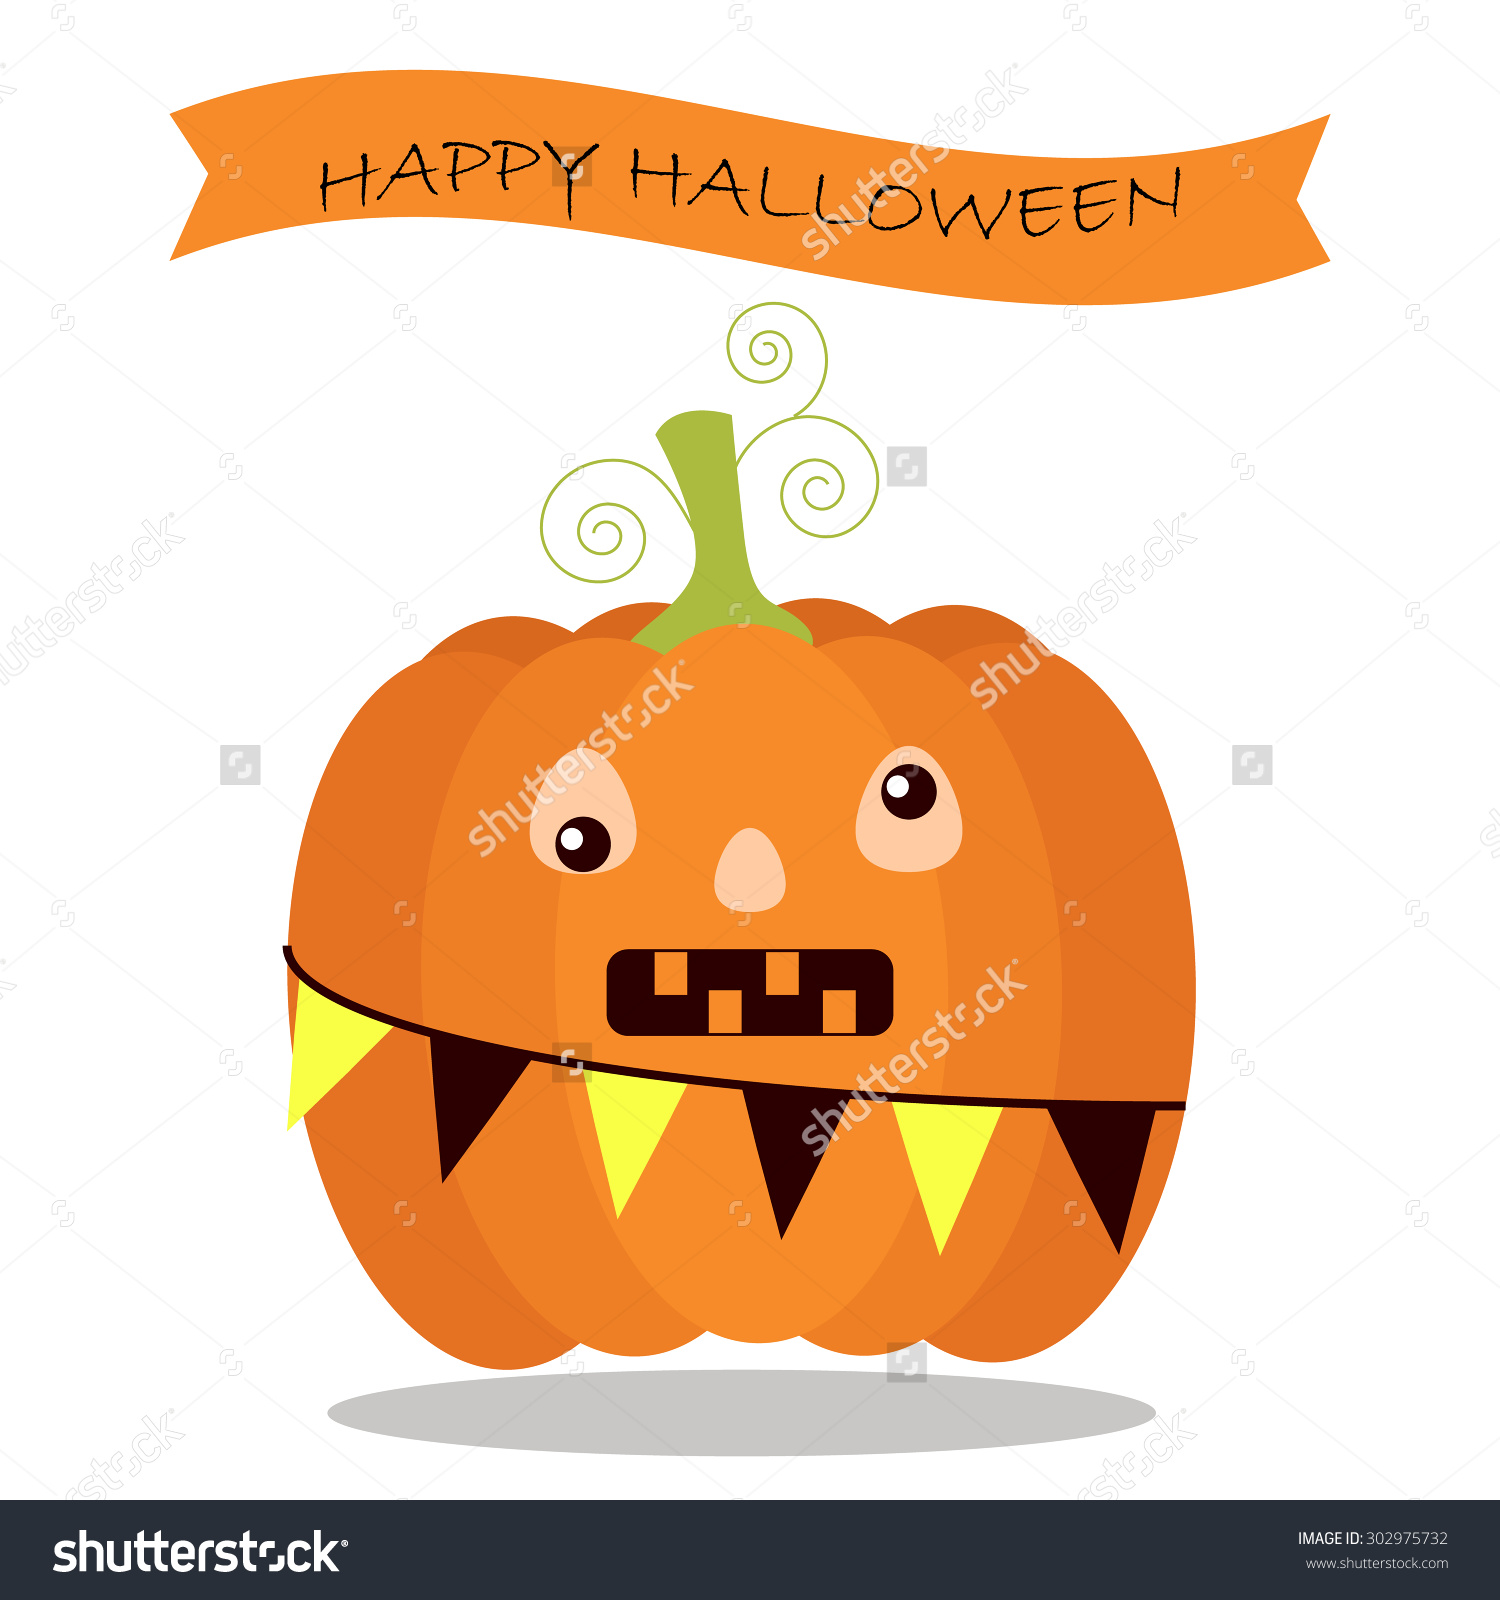 Cute pumpkin character clipart picture transparent download Cute Jack-O-Lantern Pumpkin Character Cartoon Silly Face Stock ... picture transparent download